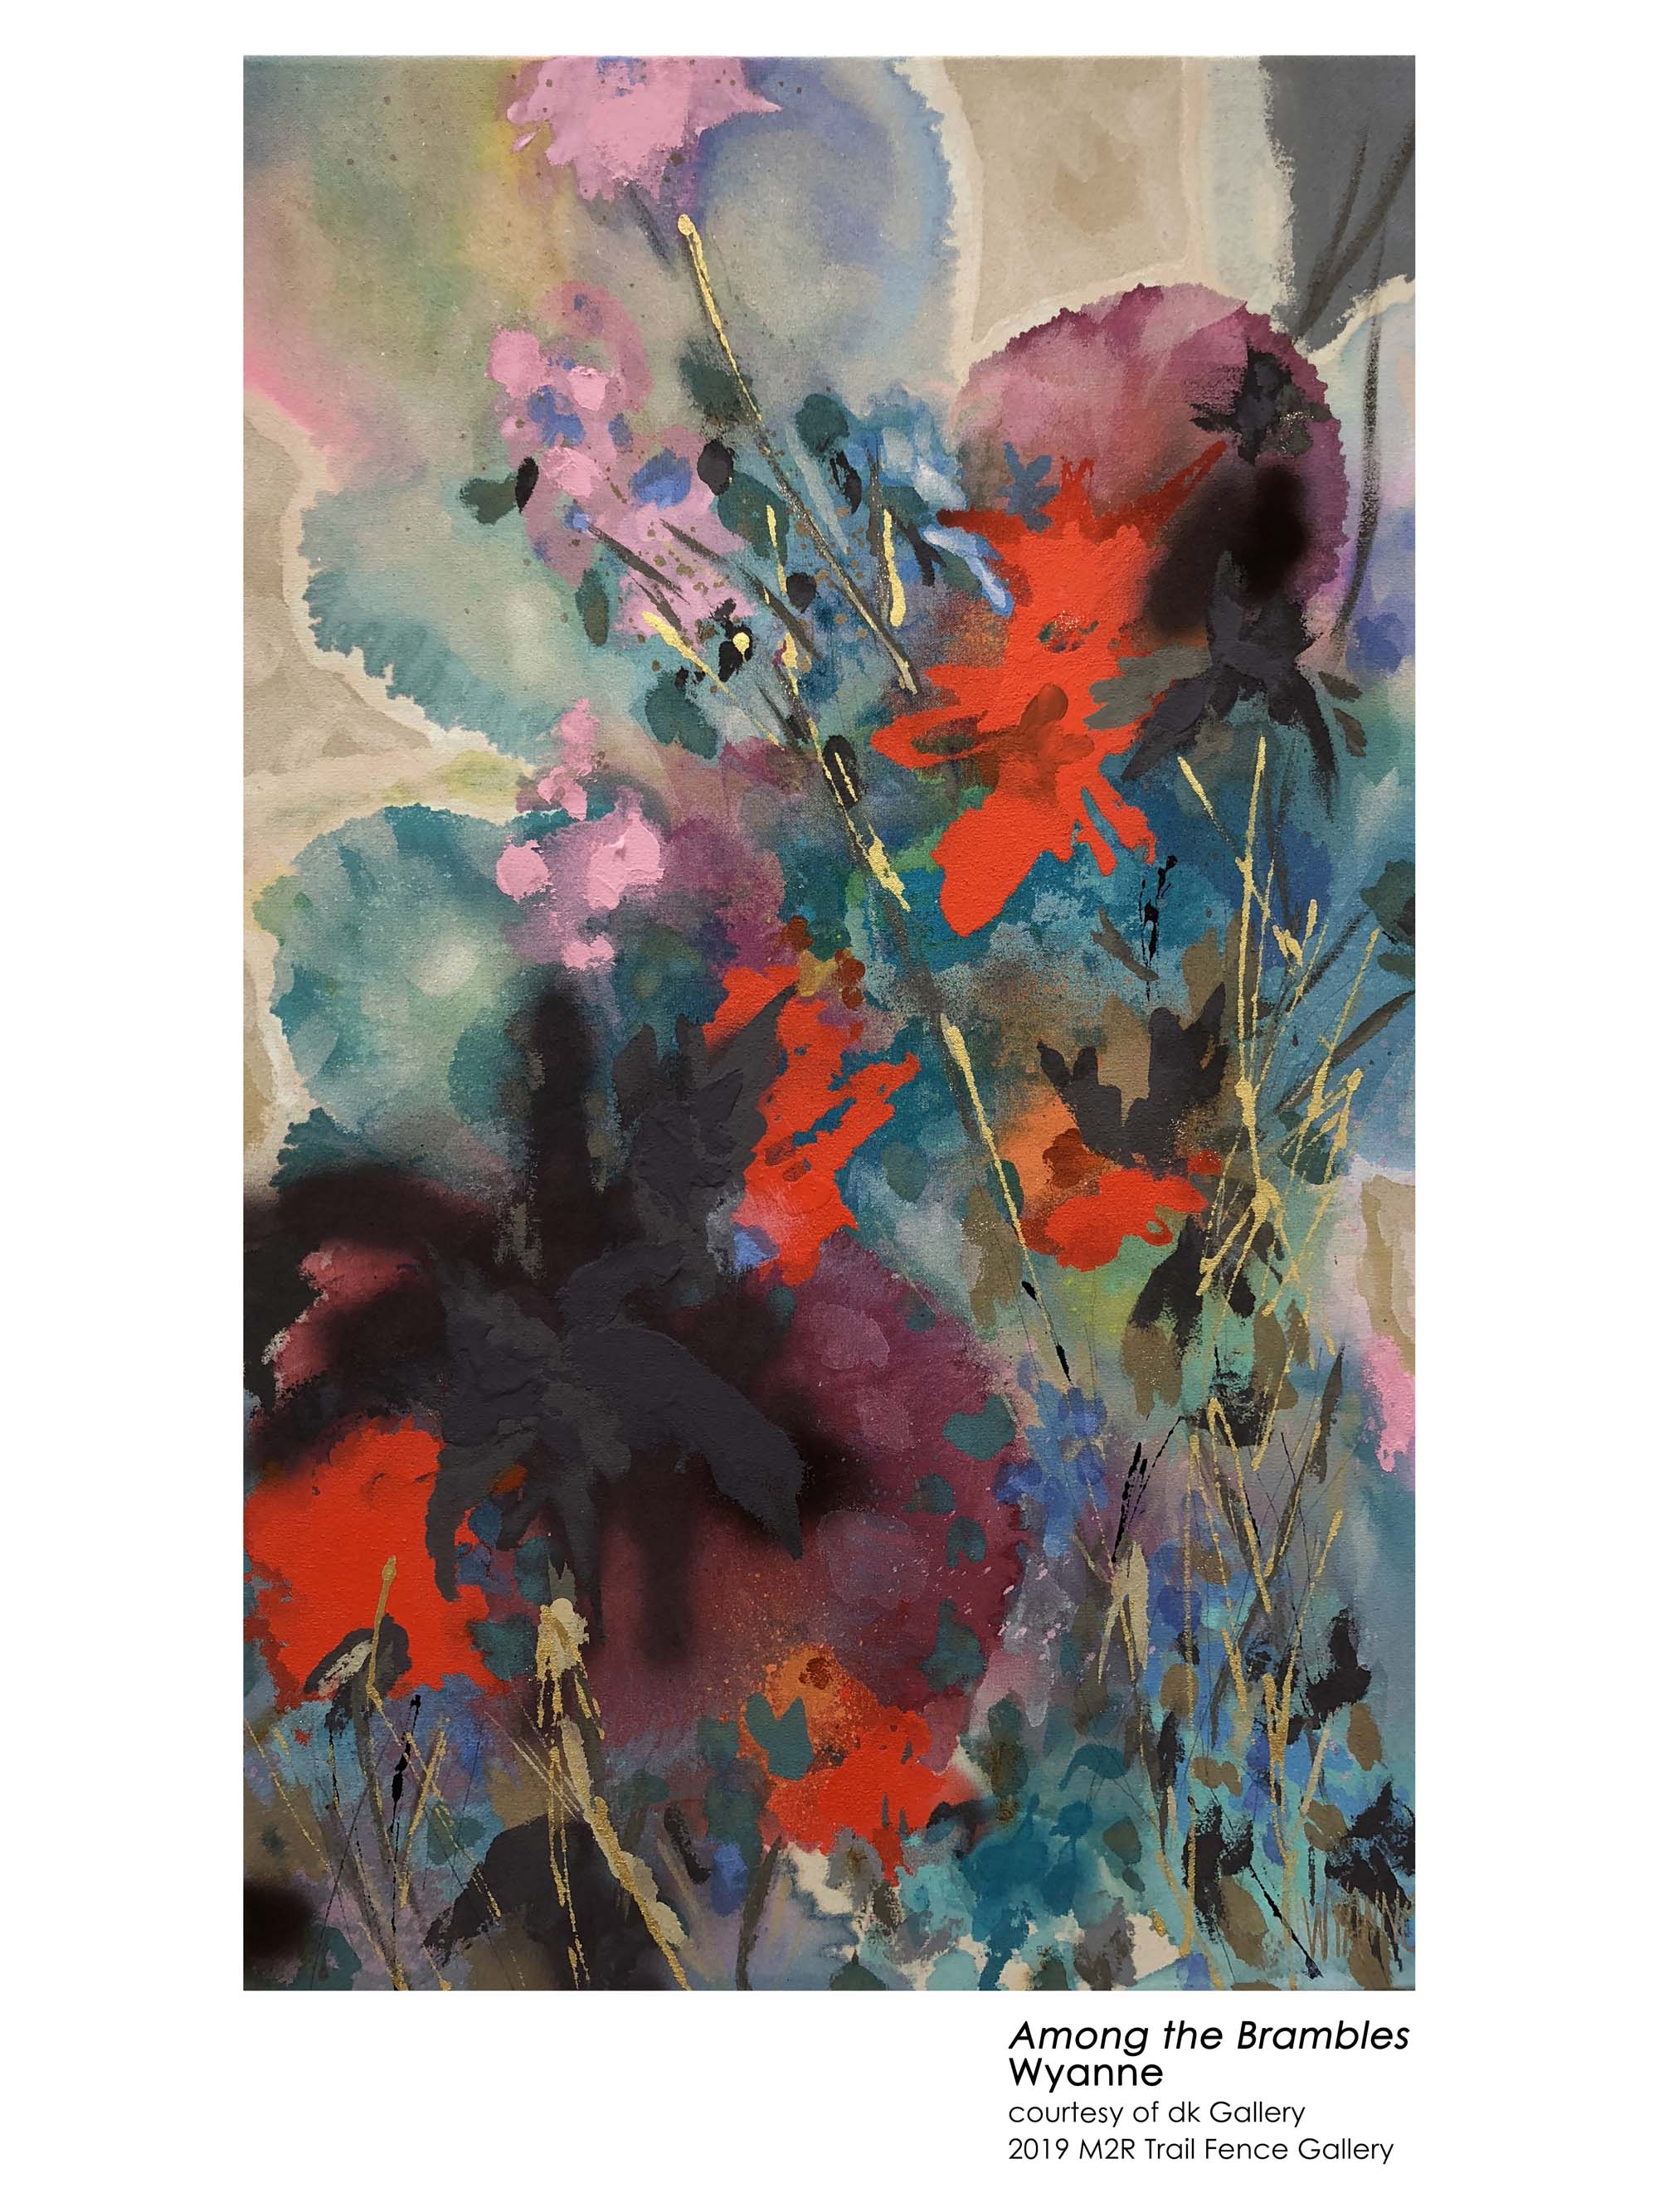 Wyanne_Among the Brambles _37X23_Mixed Media on Canvas.jpg